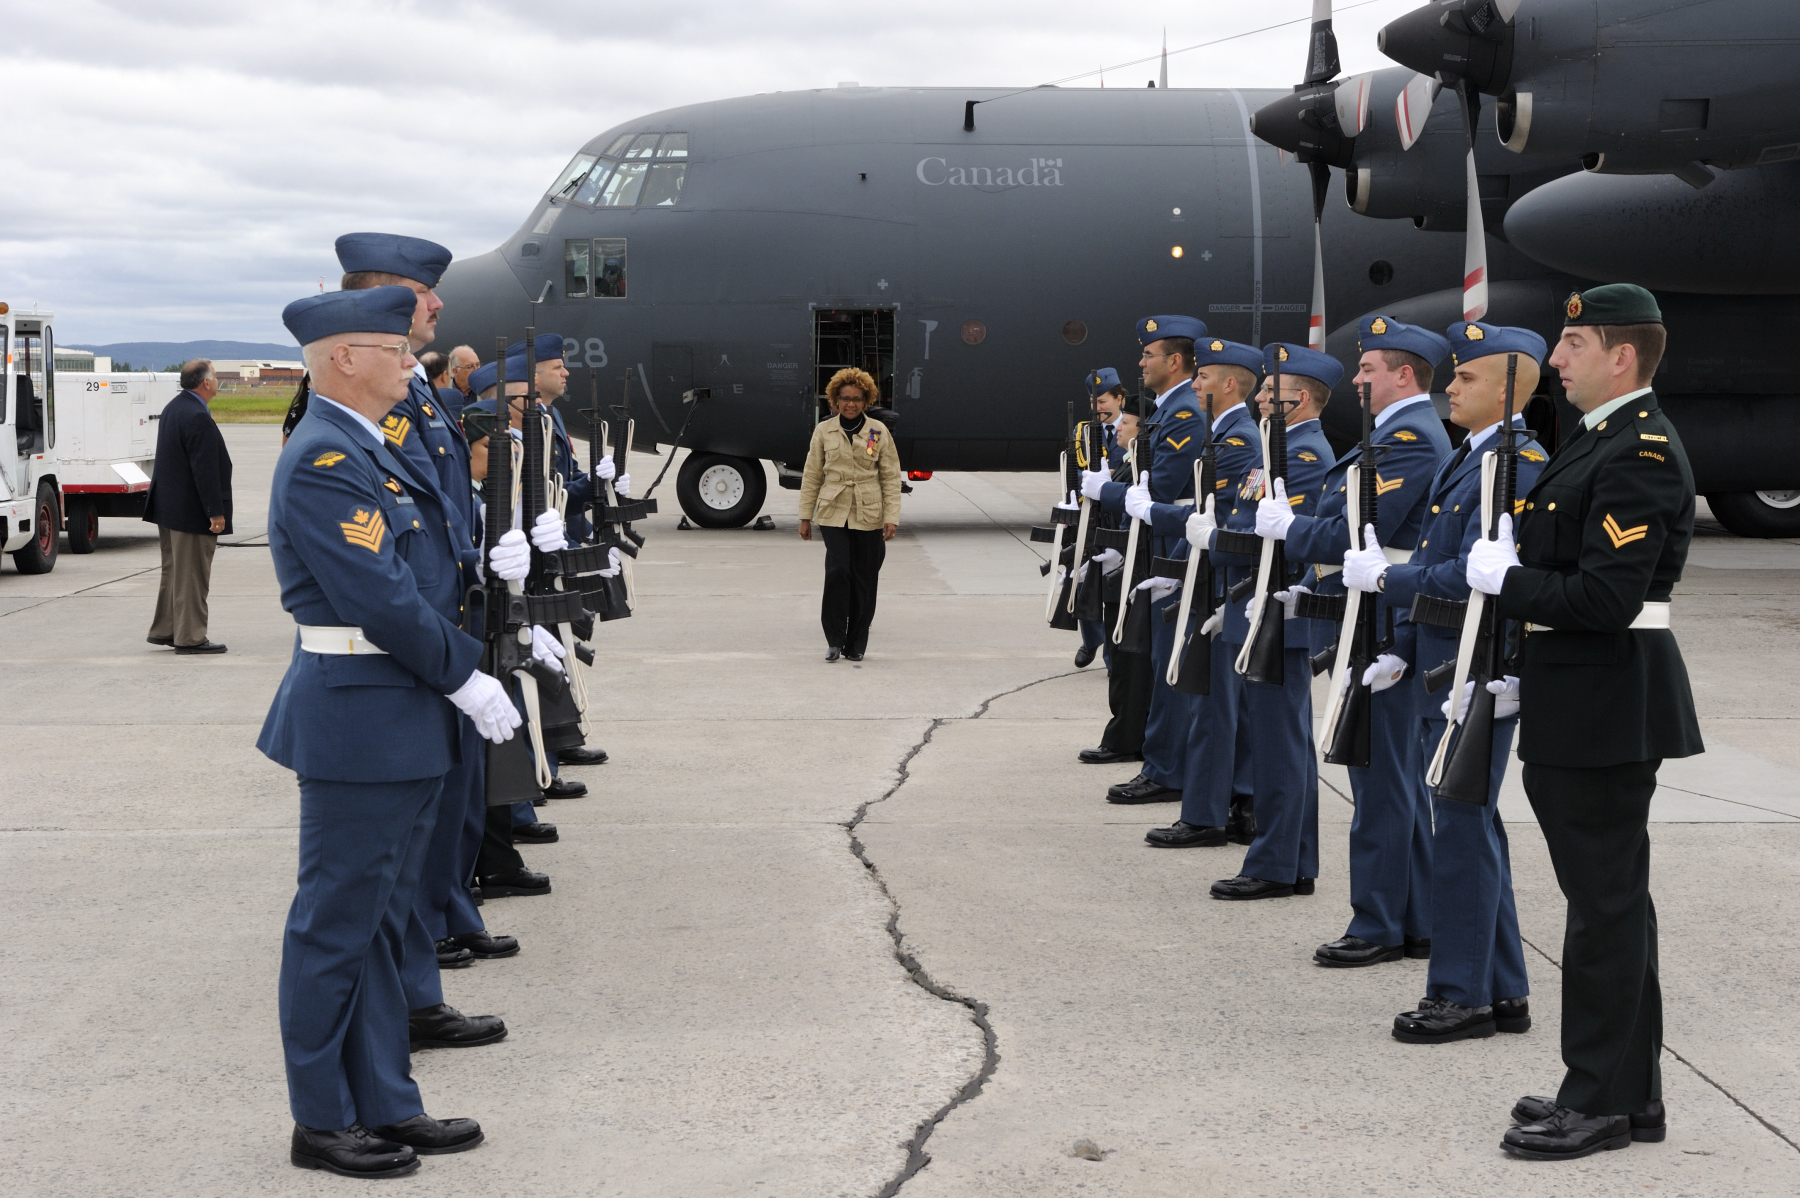 A Guard of Honour welcomed the Governor General and Commander-in-Chief of Canada upon her arrival to Happy Valley - Goose Bay Airport.